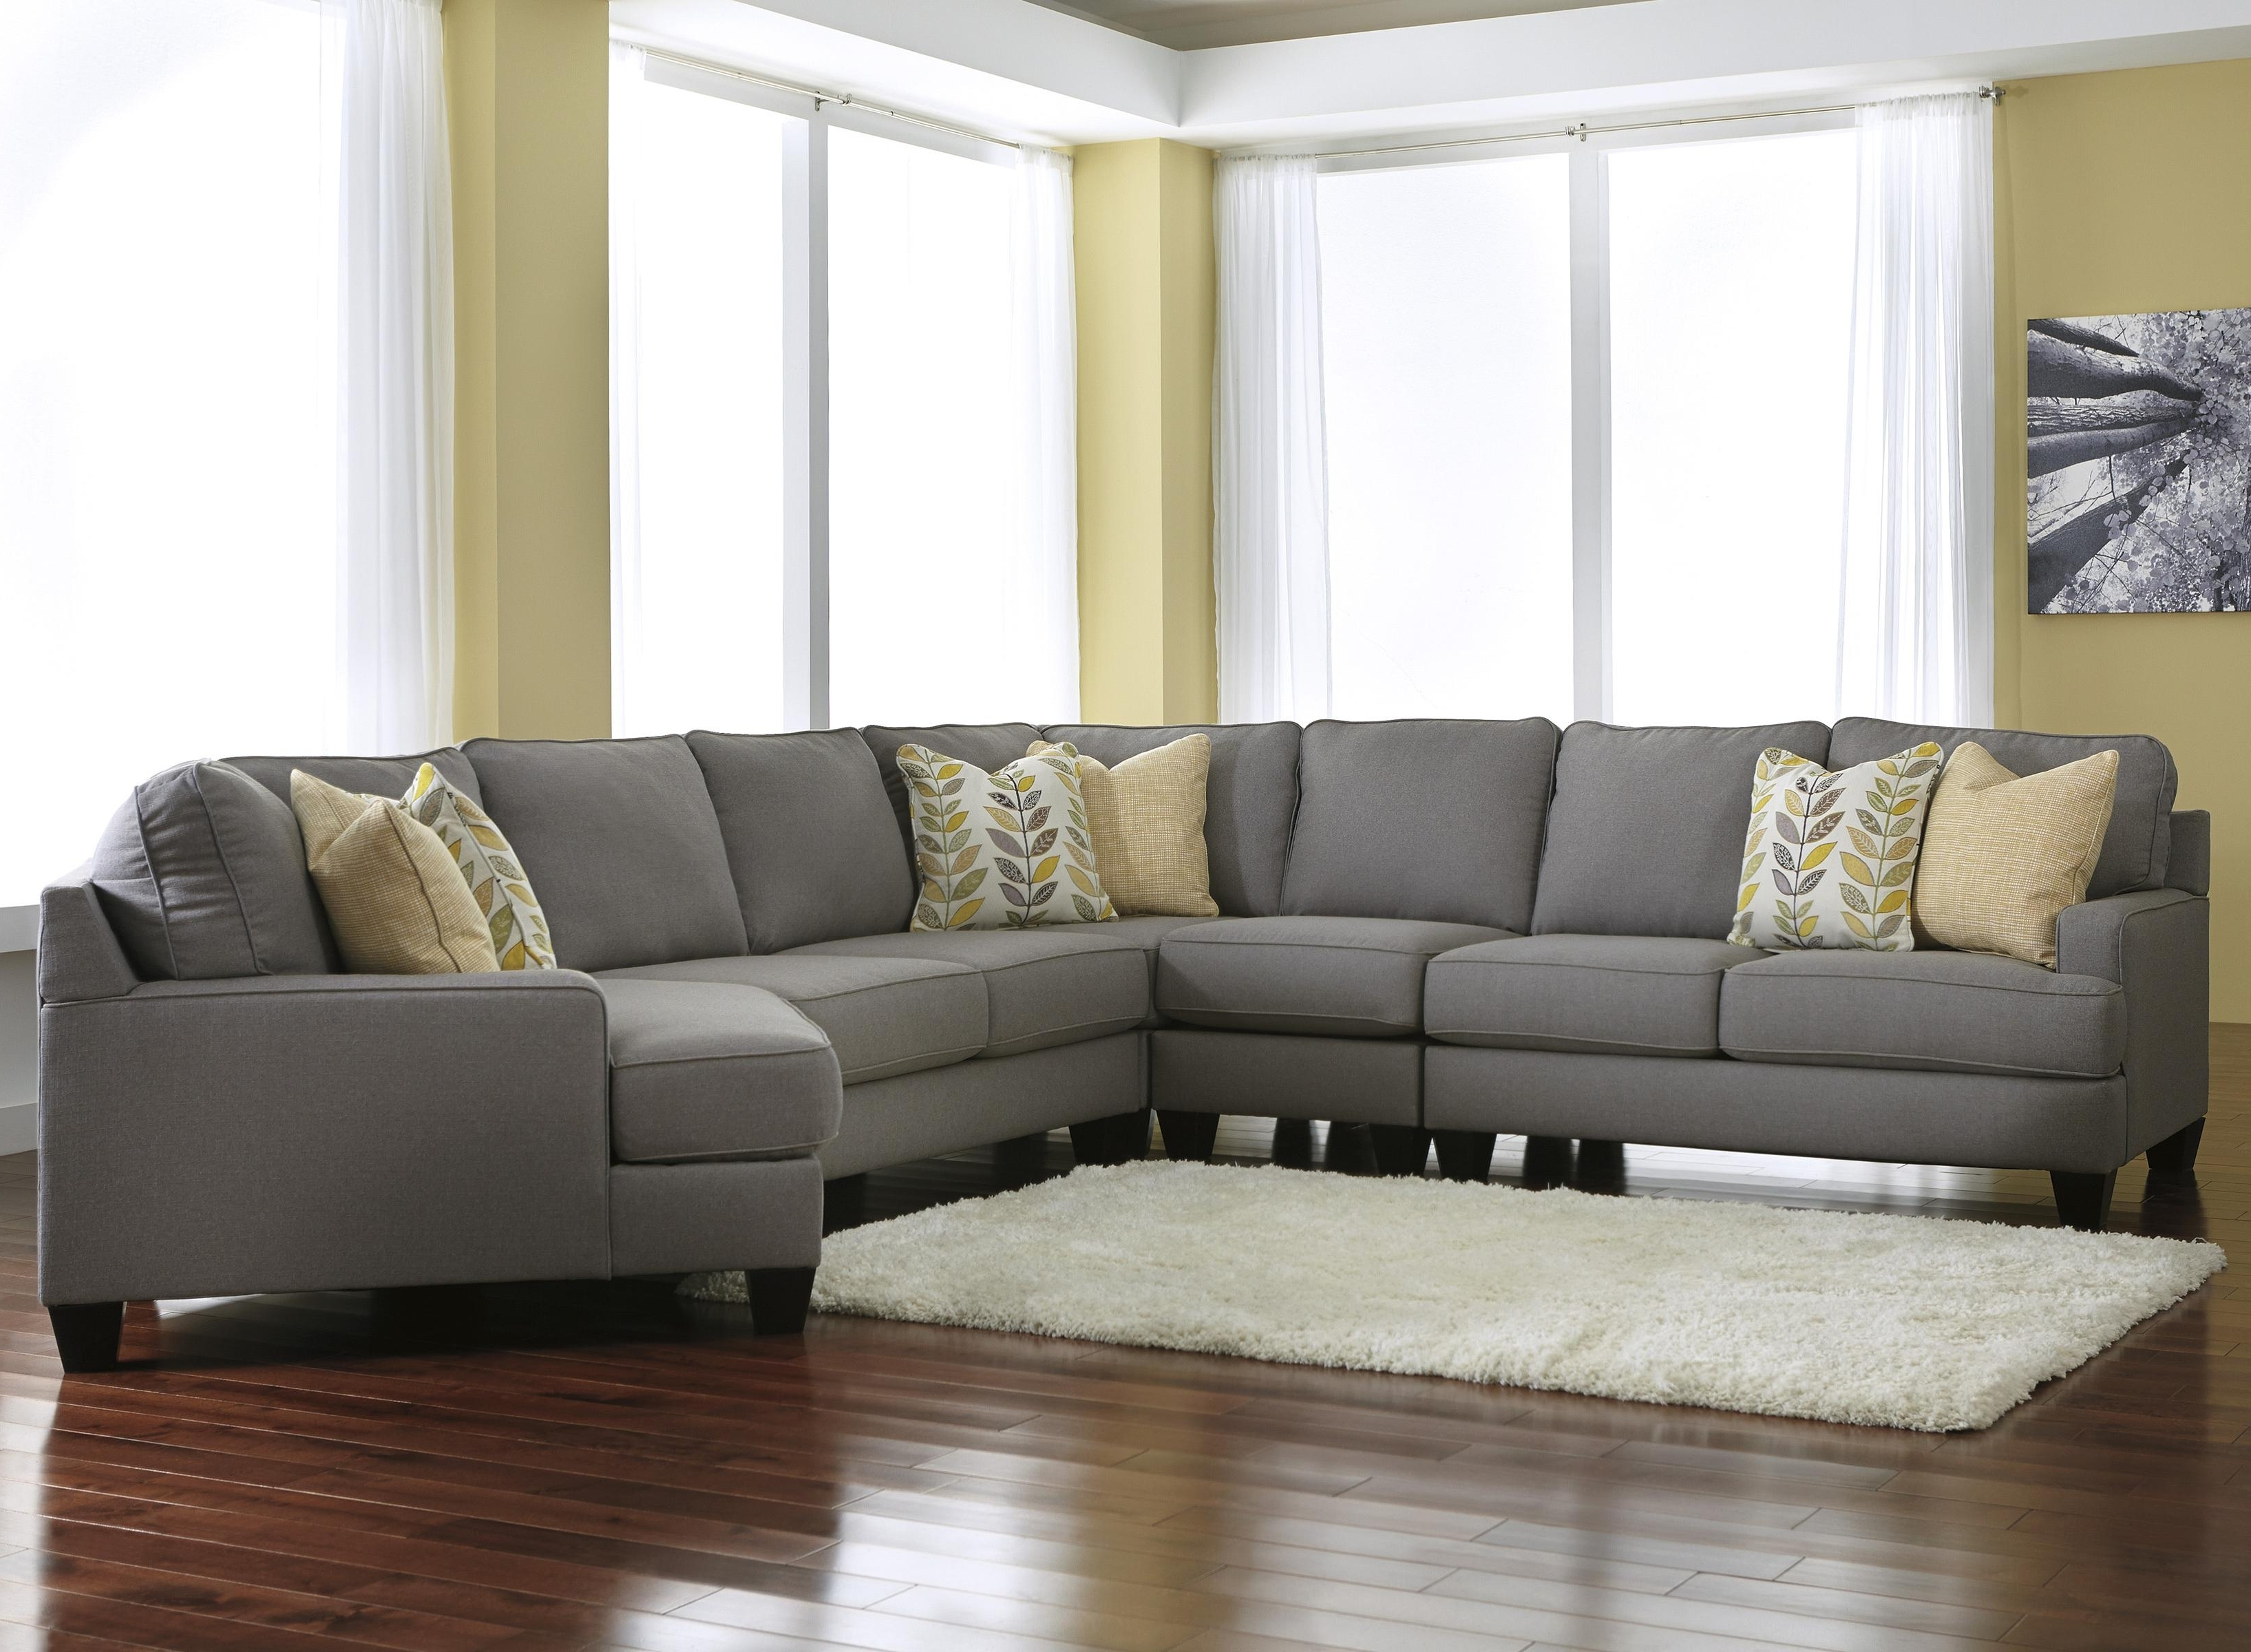 Signature Designashley Chamberly – Alloy Modern 5 Piece Inside Most Recent Sectional Sofas With Cuddler Chaise (View 19 of 20)